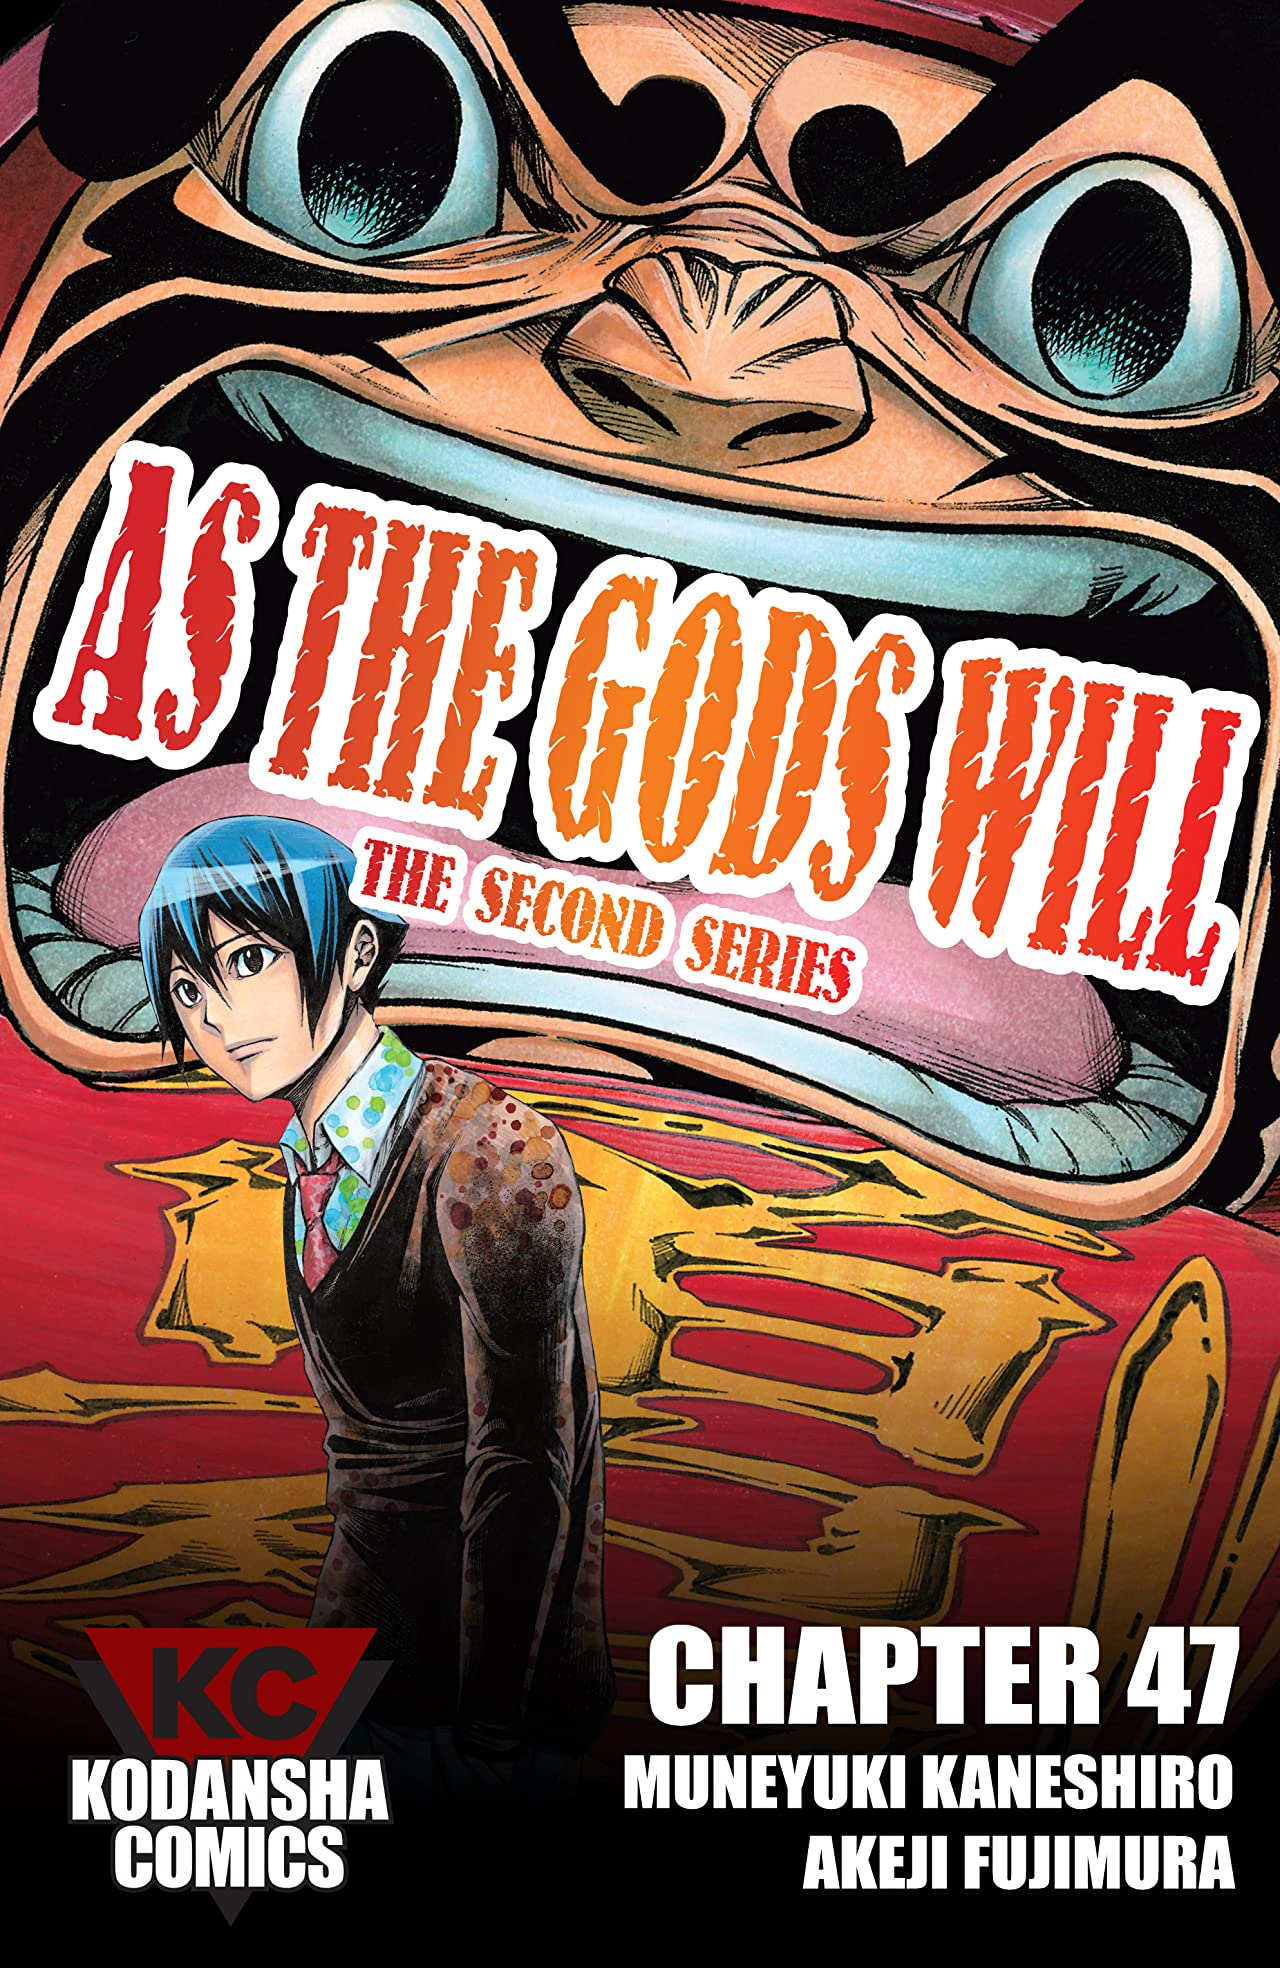 As The Gods Will: The Second Series #47